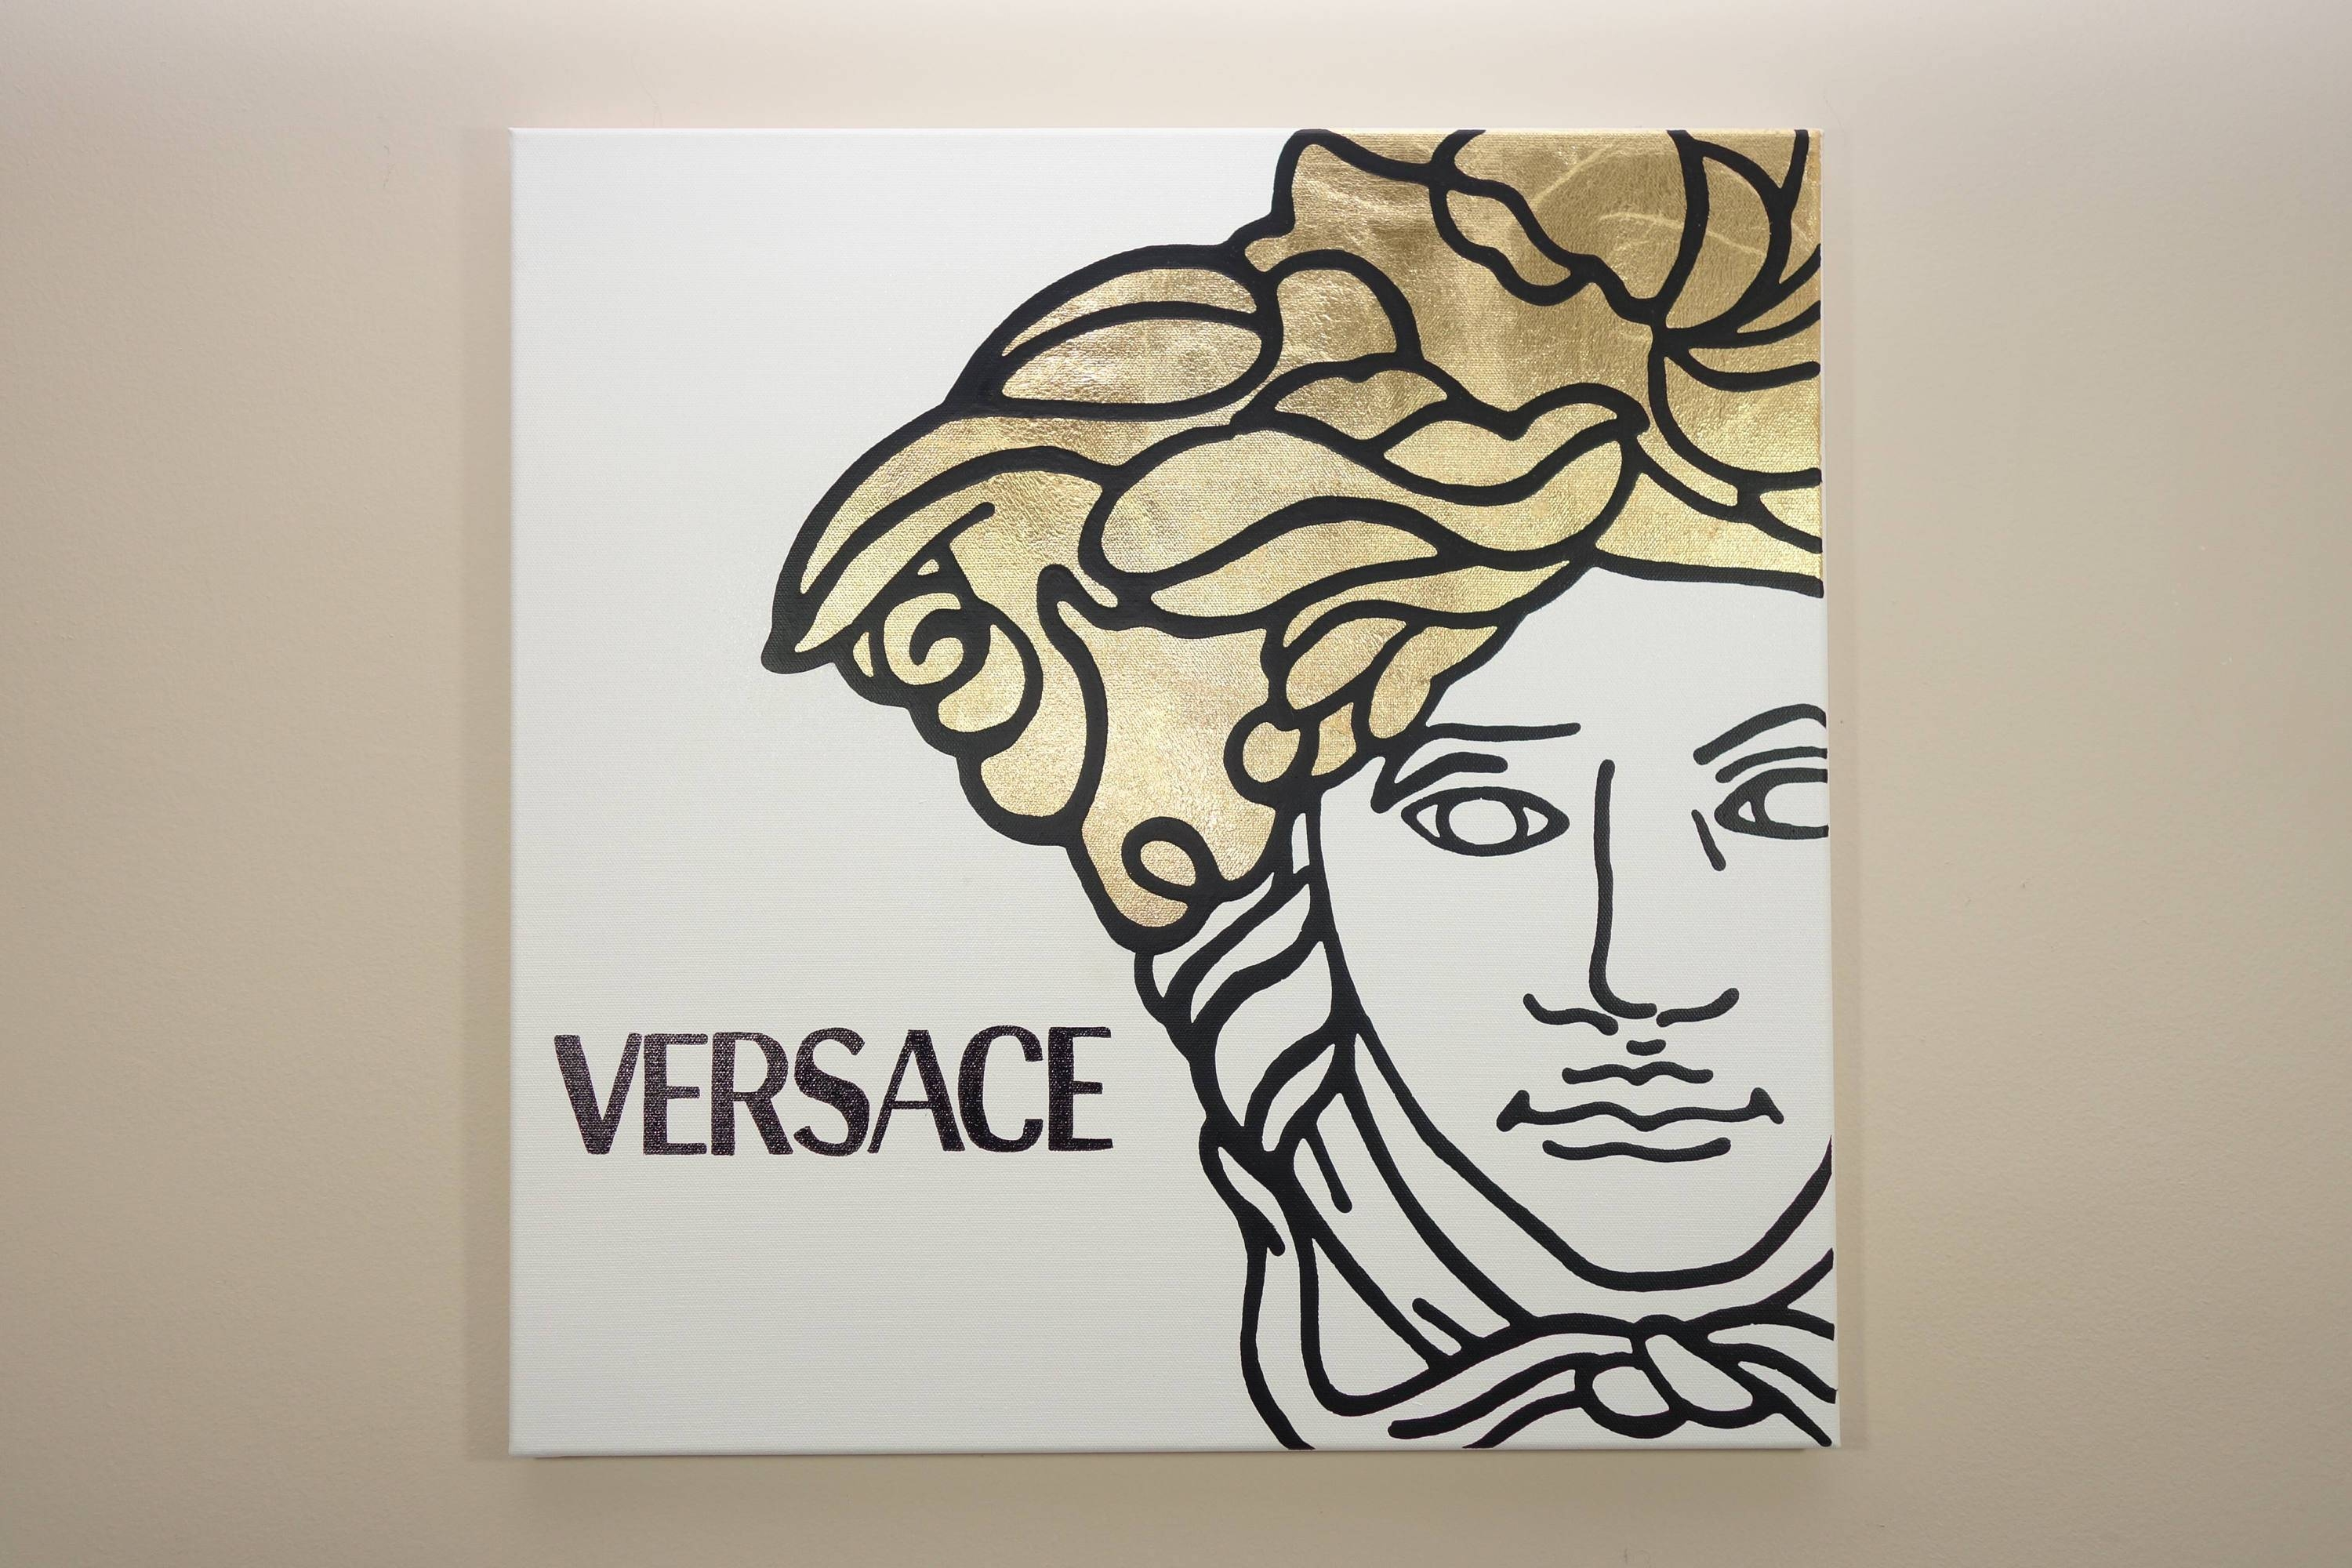 Versace Medusa Painting 20X20 Pop Art Black Gold Leaf regarding Most Recent Versace Wall Art